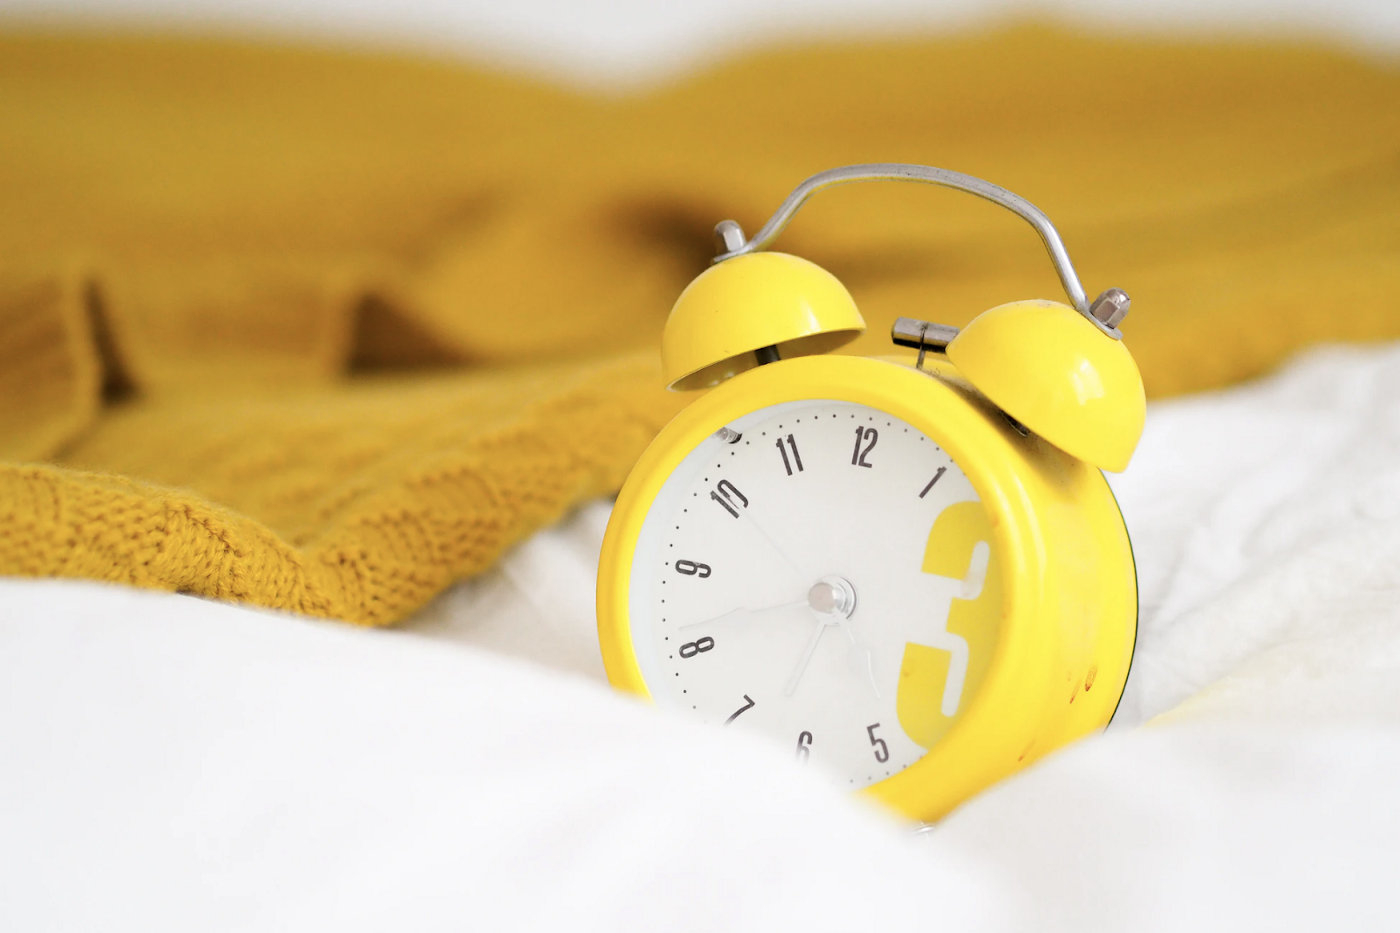 yellow analog alarm clock on a bed